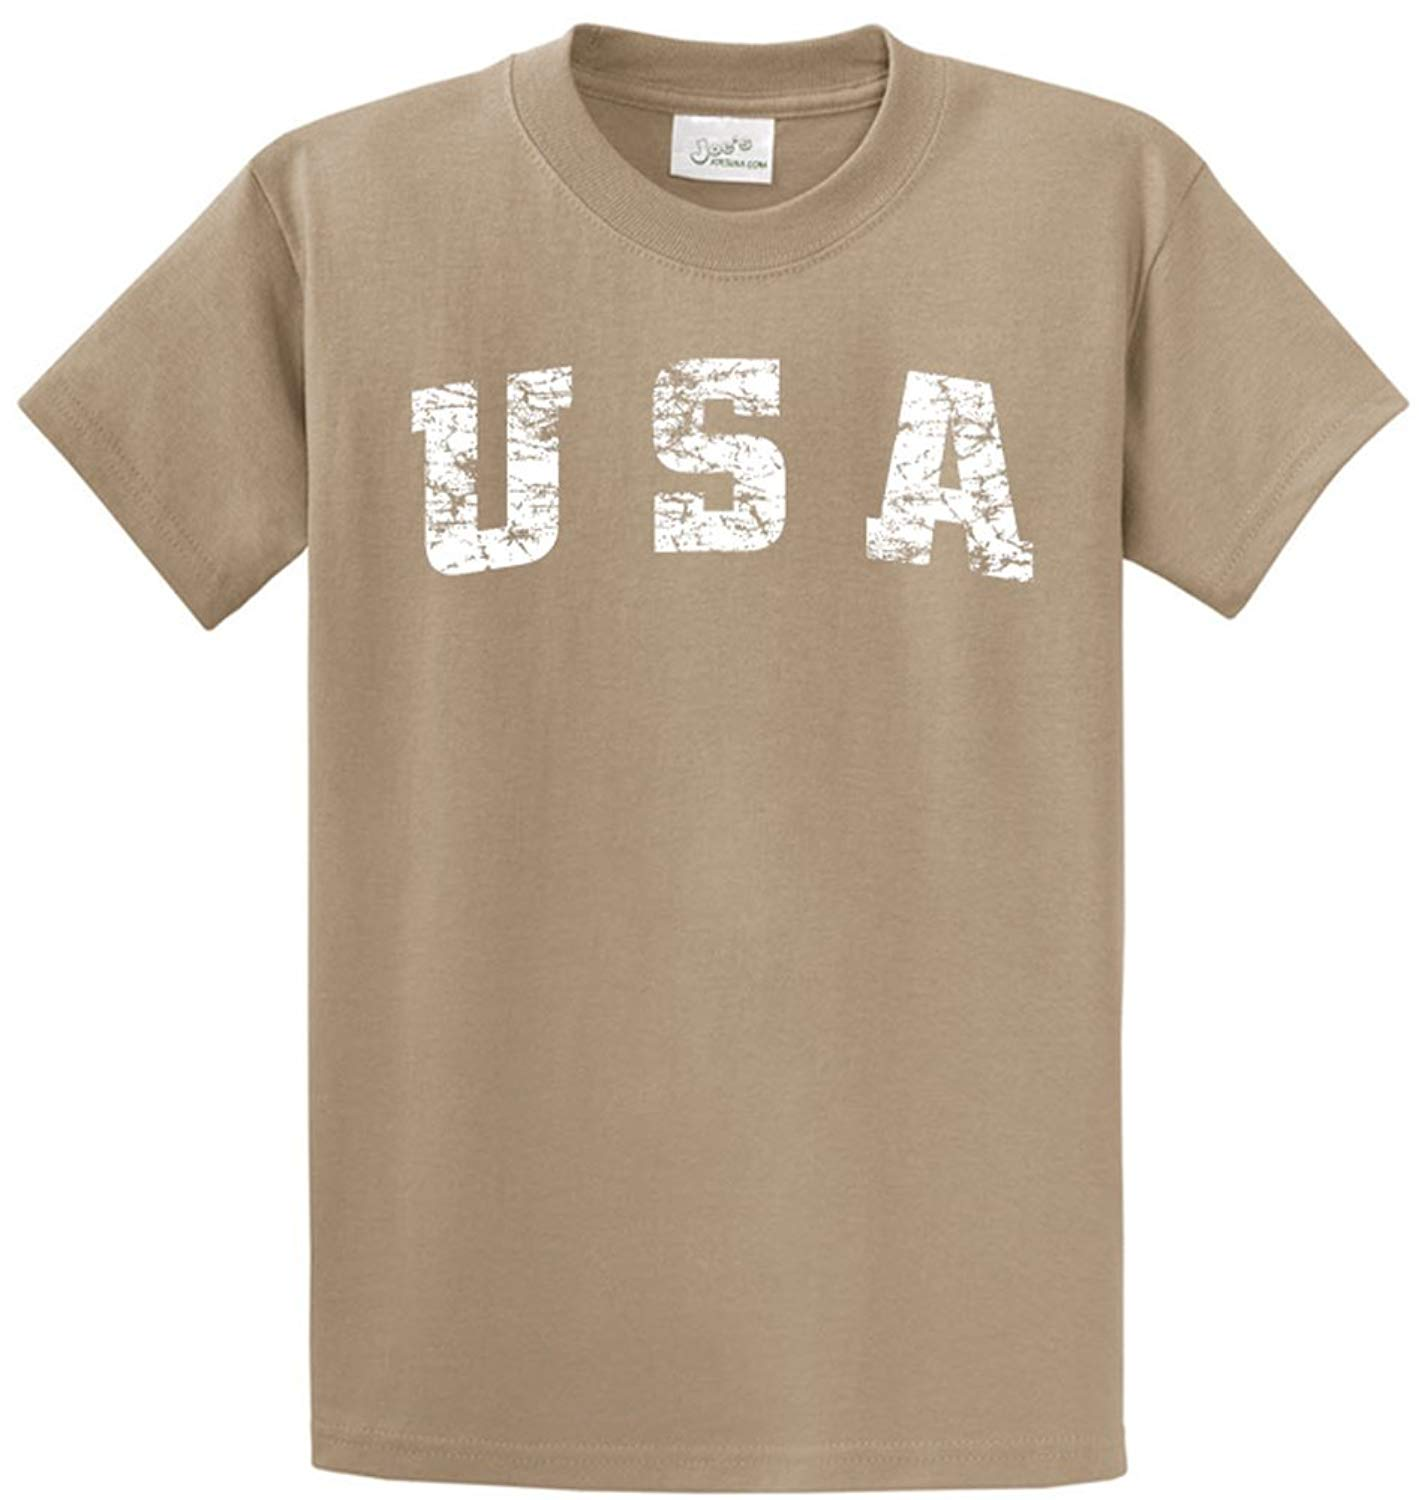 832211be104 Get Quotations · Joe s USA tm -Tall Vintage USA Logo Tee T-Shirts in Size  3X-